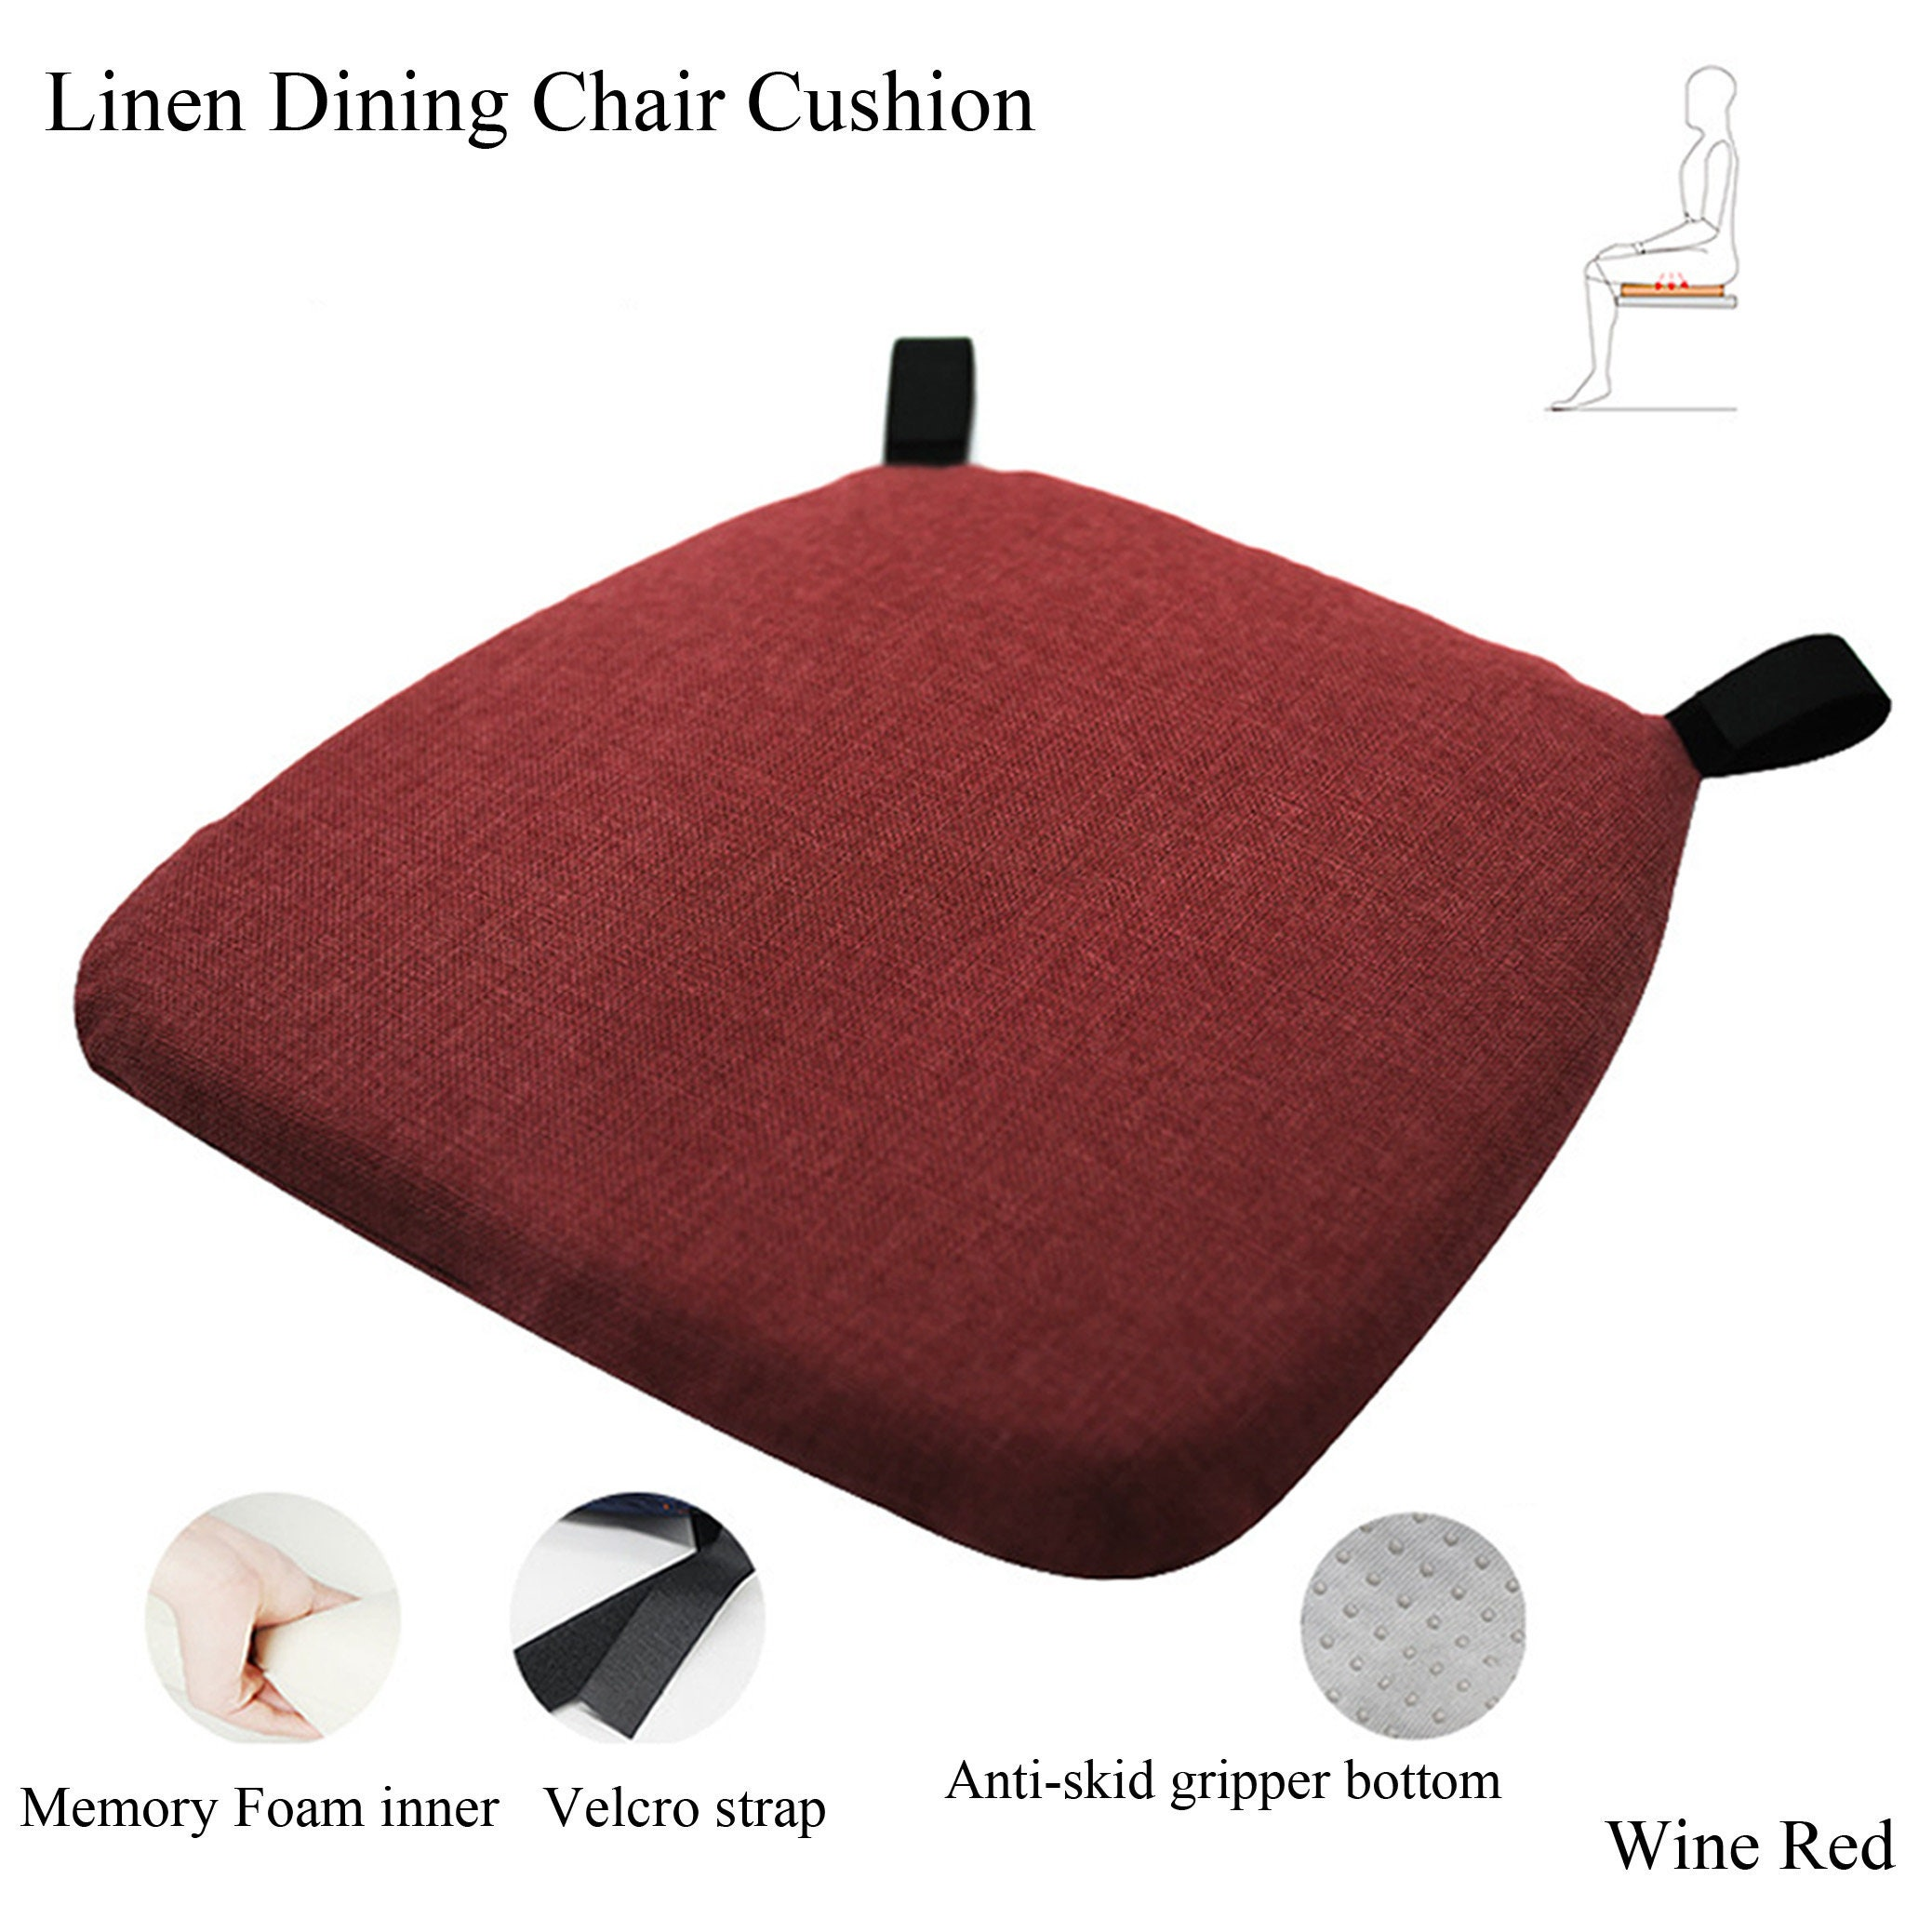 Dining Chair Cushions Gripper Memory, Memory Foam For Dining Room Chairs